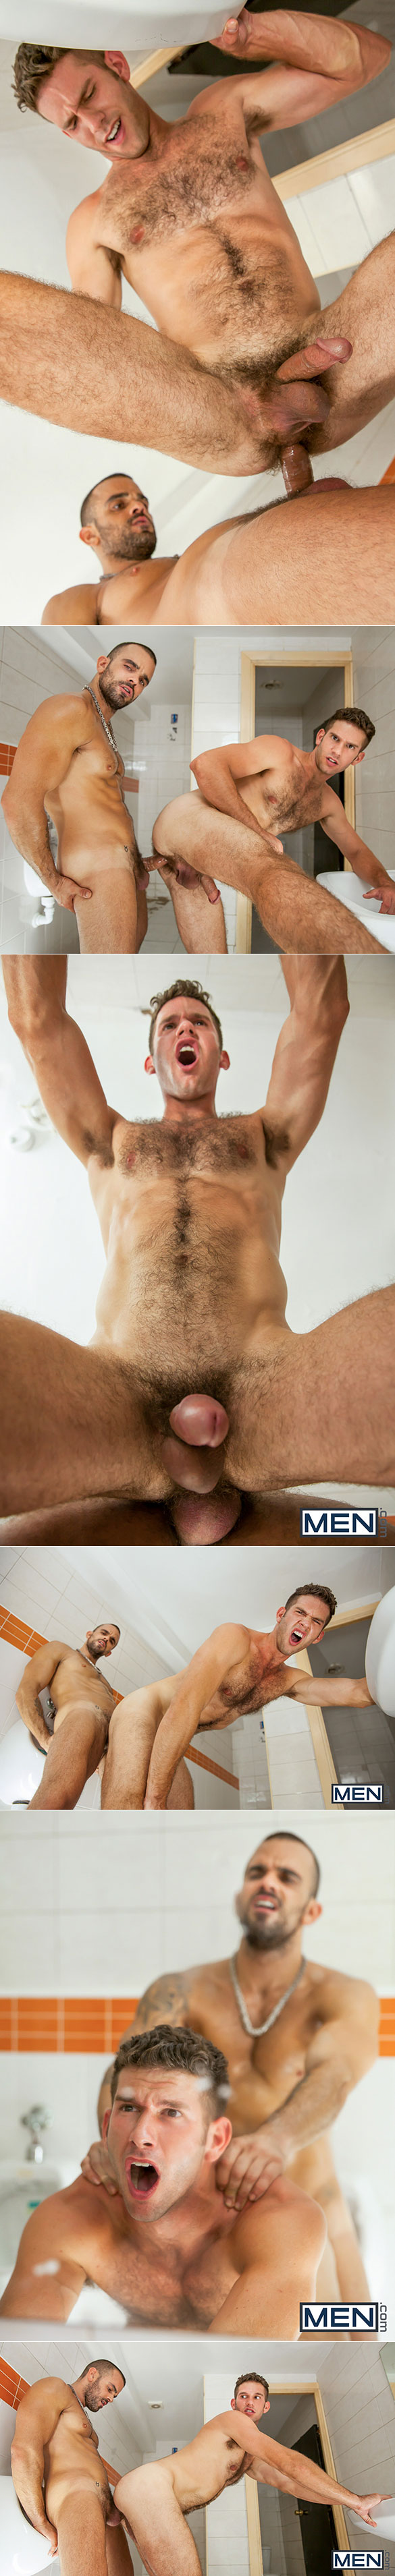 "Men.com: Damien Crosse pounds Jimmy Fanz in ""Thirst, Part 1"""